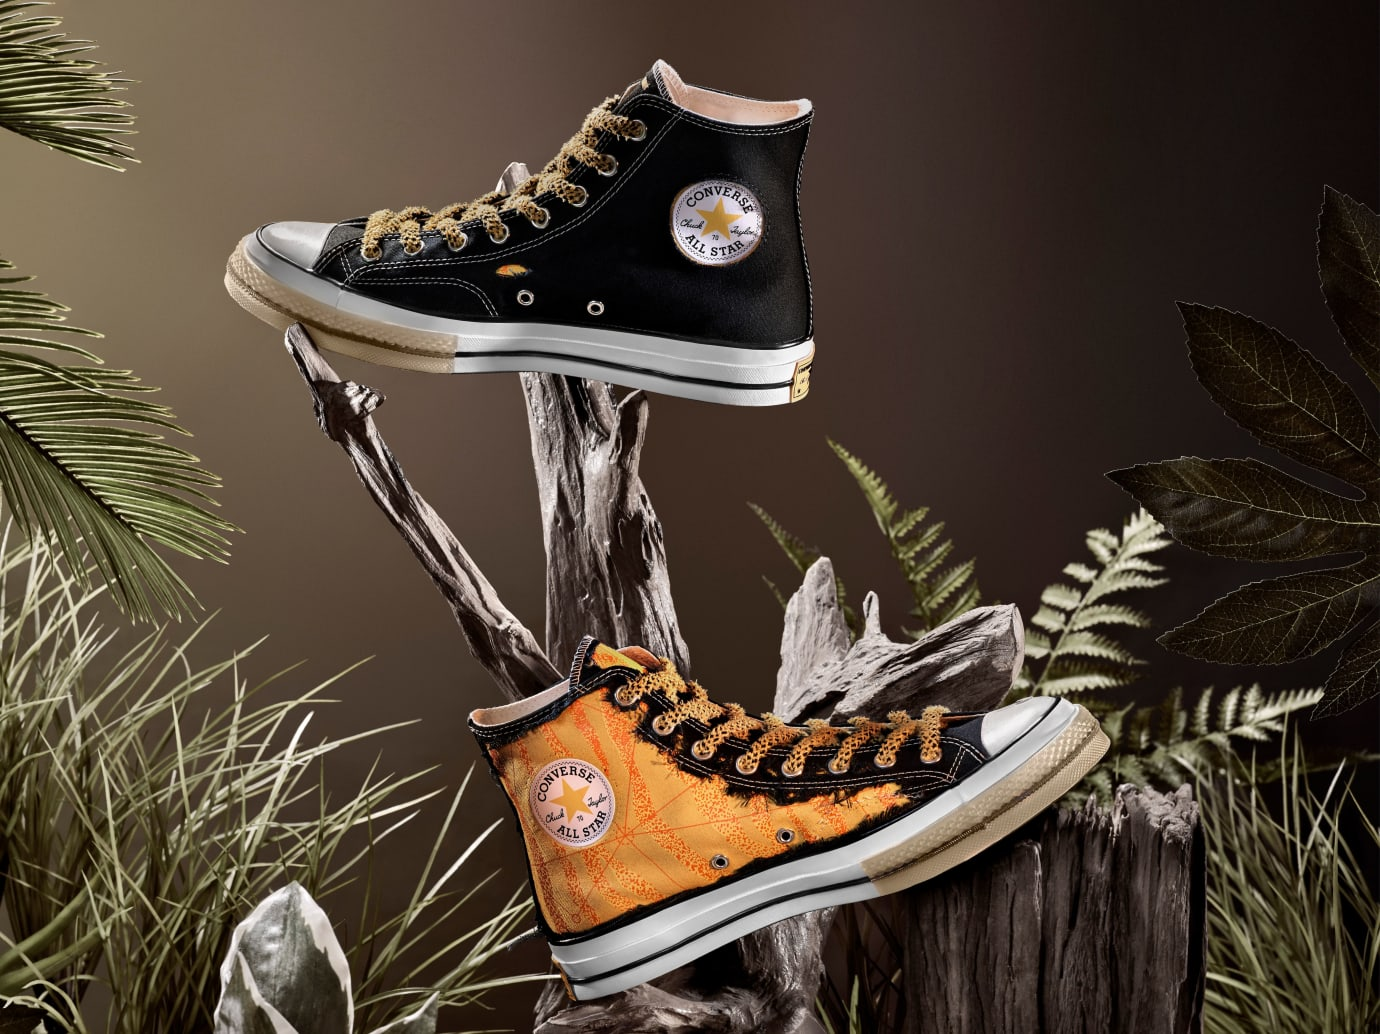 Dr. Woo x Converse Chuck 70 'Wear to Reveal' 1